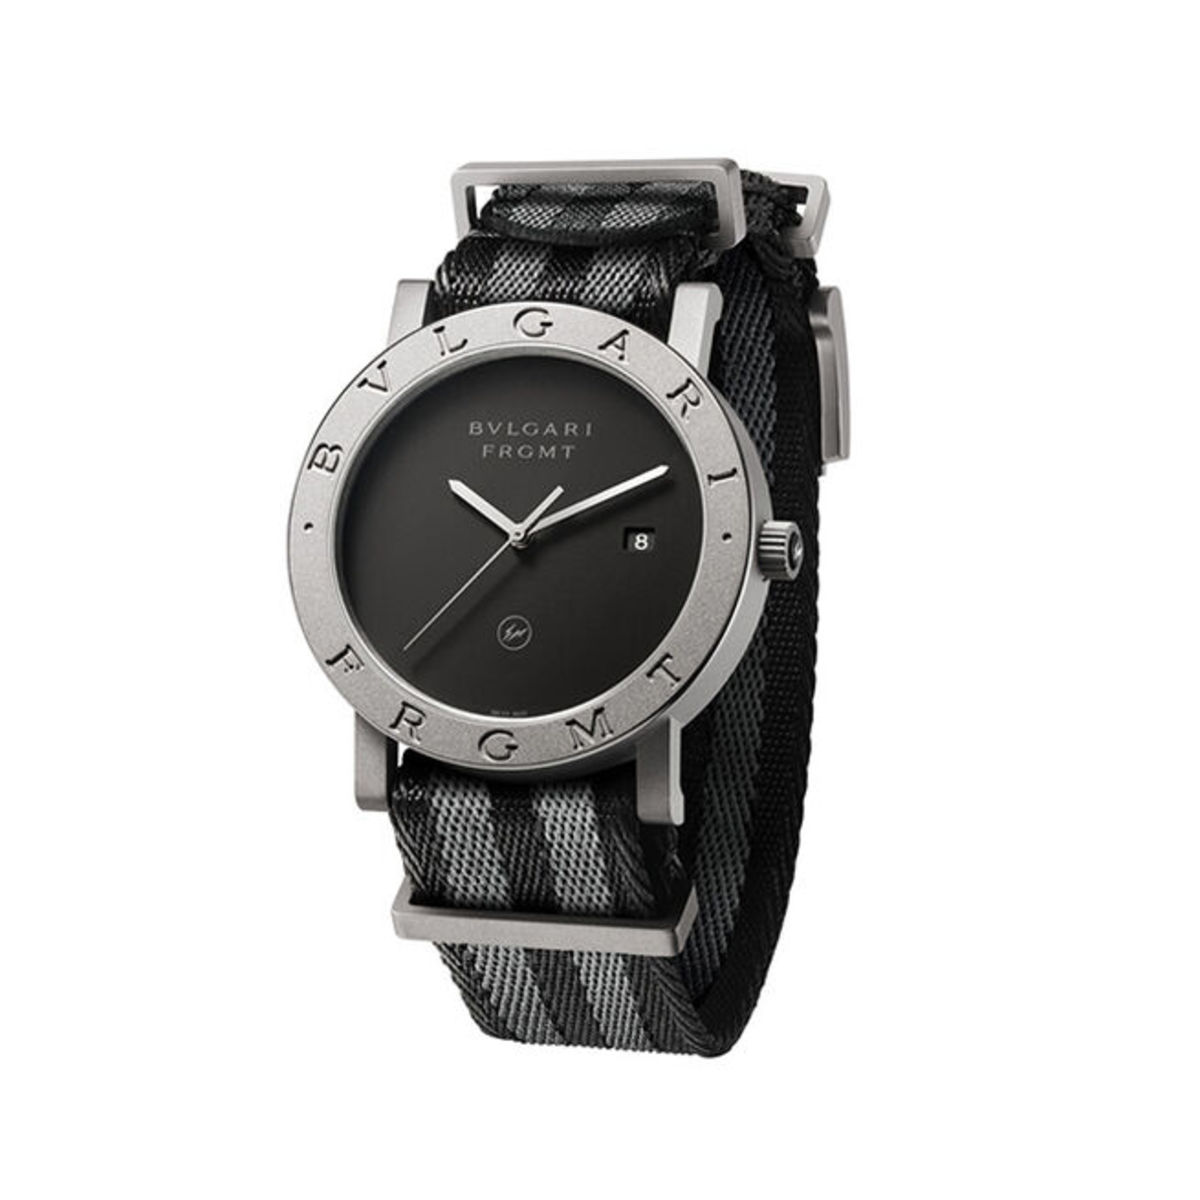 Bulgari Fragment Watch